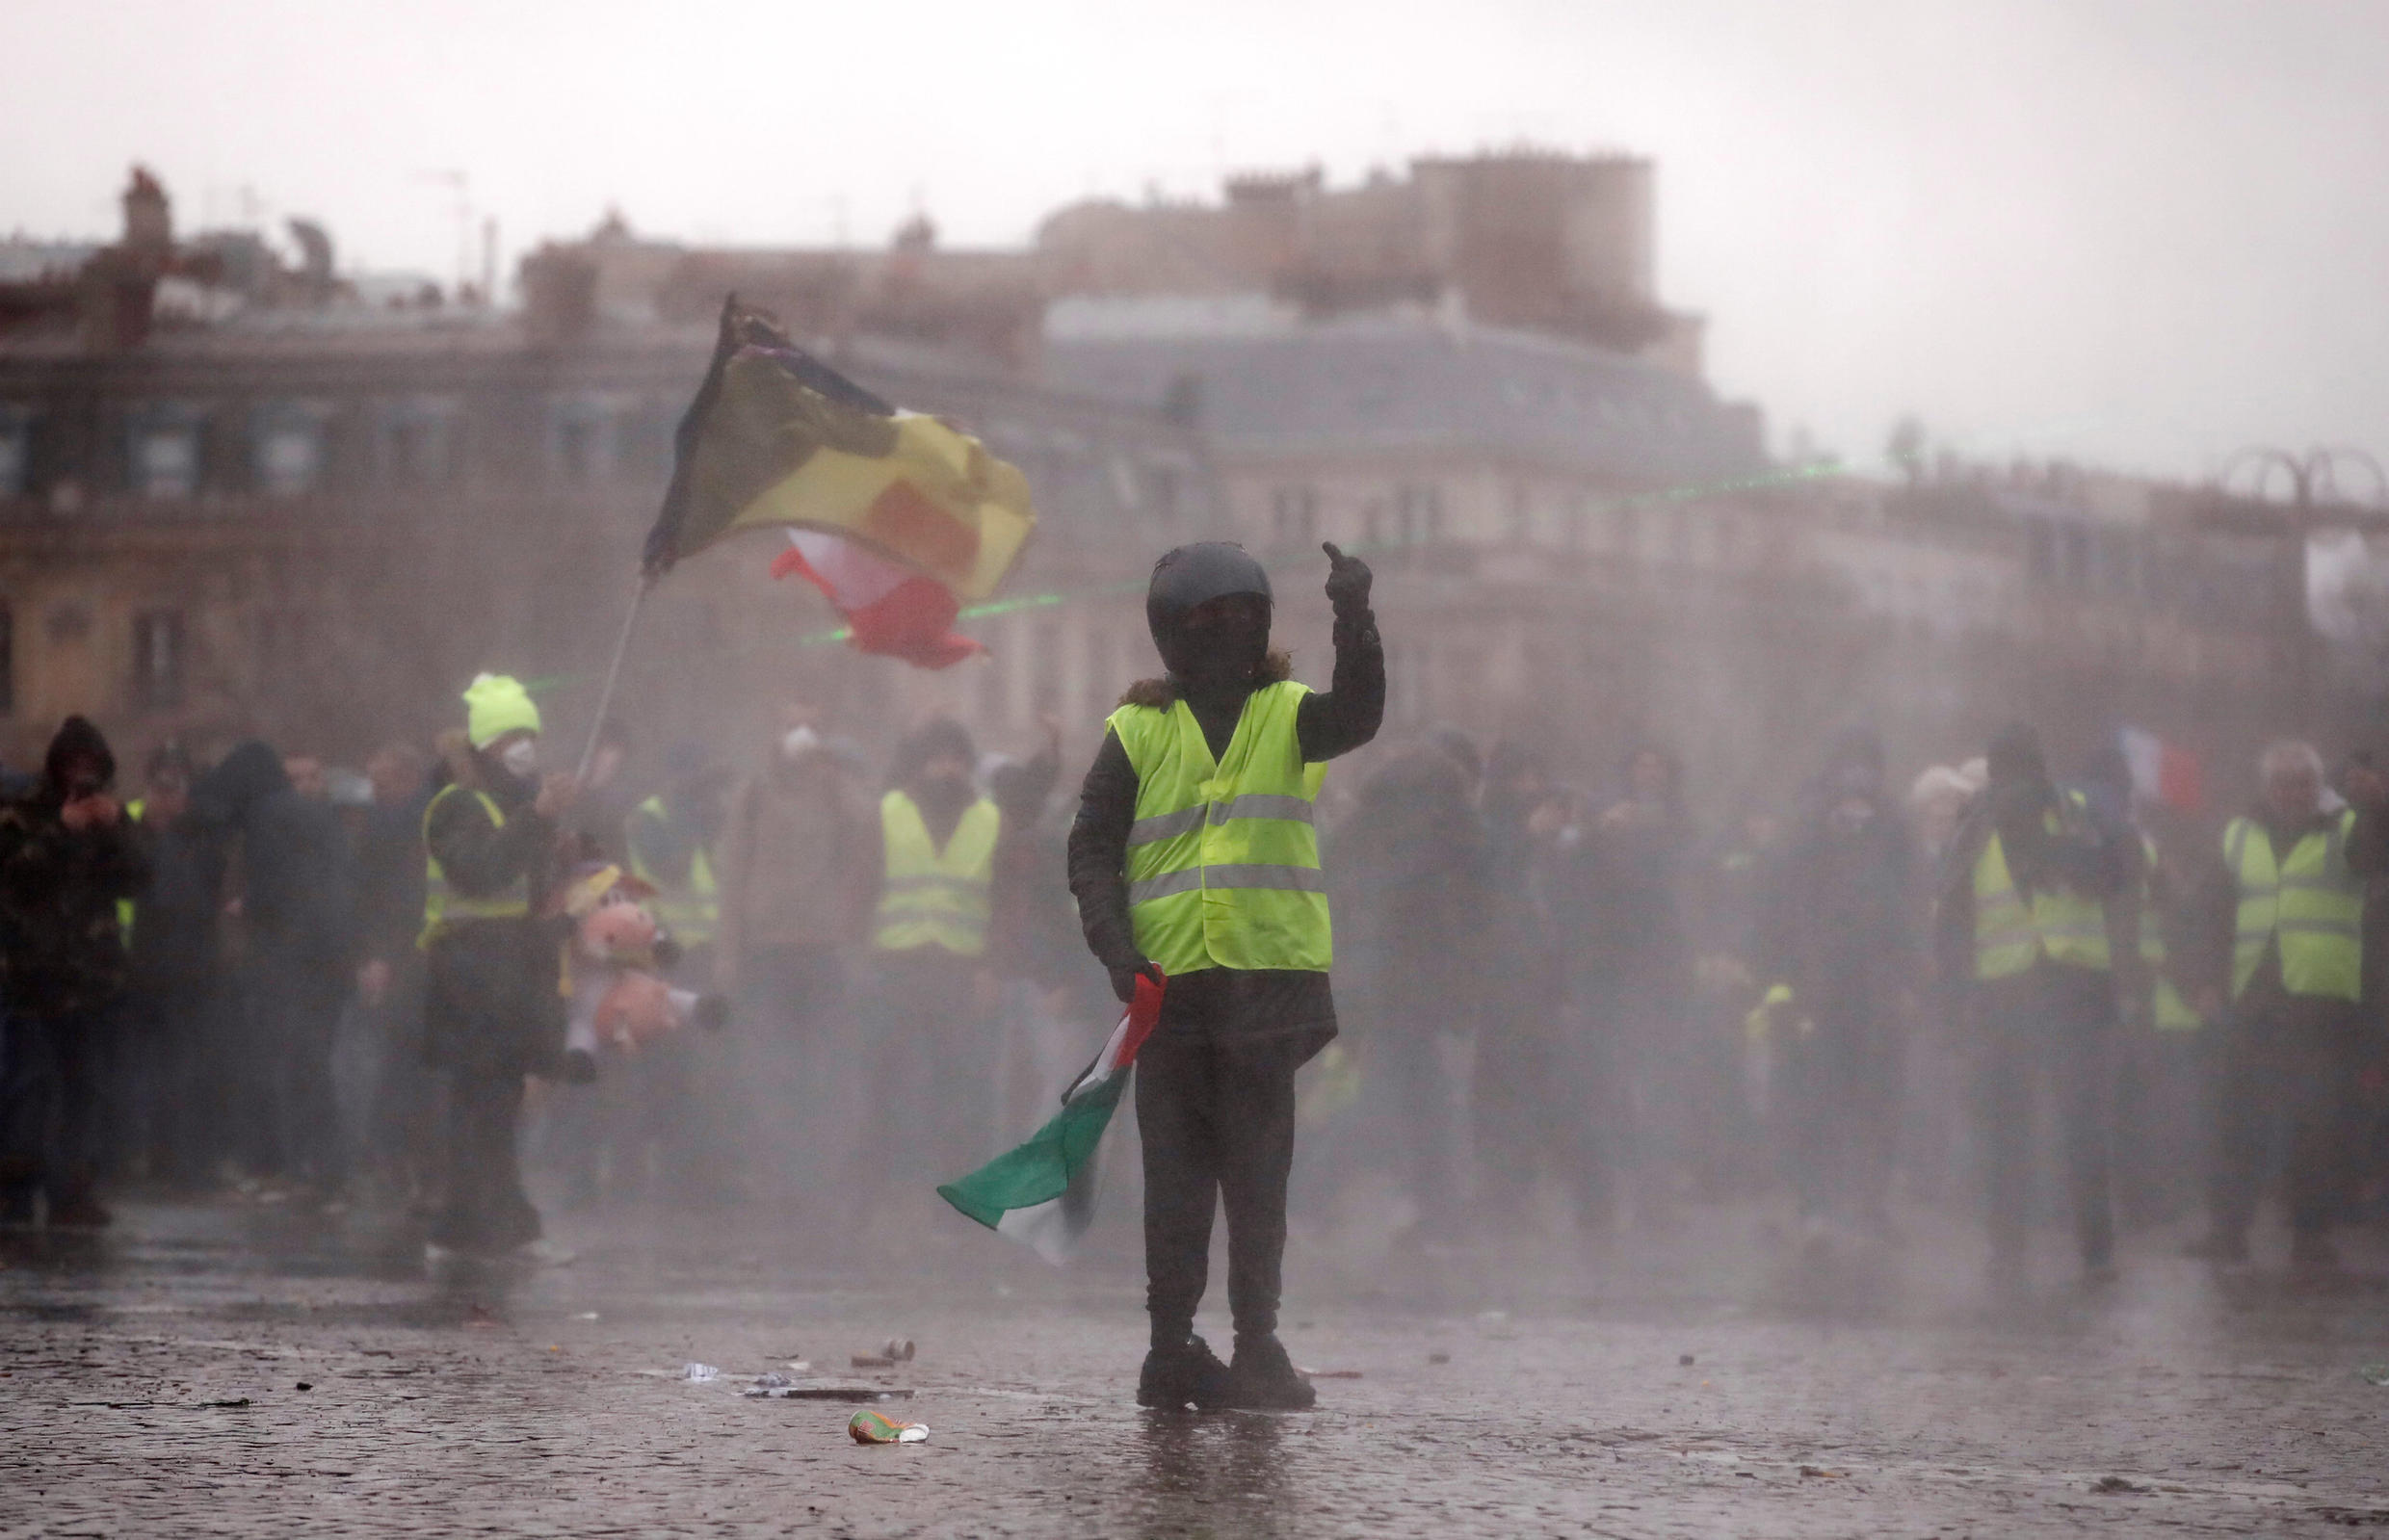 """A protester wearing a yellow vest gestures during a demonstration by the """"yellow vests"""" movement near the Arc de Triomphe in Paris, France, January 12, 2019."""